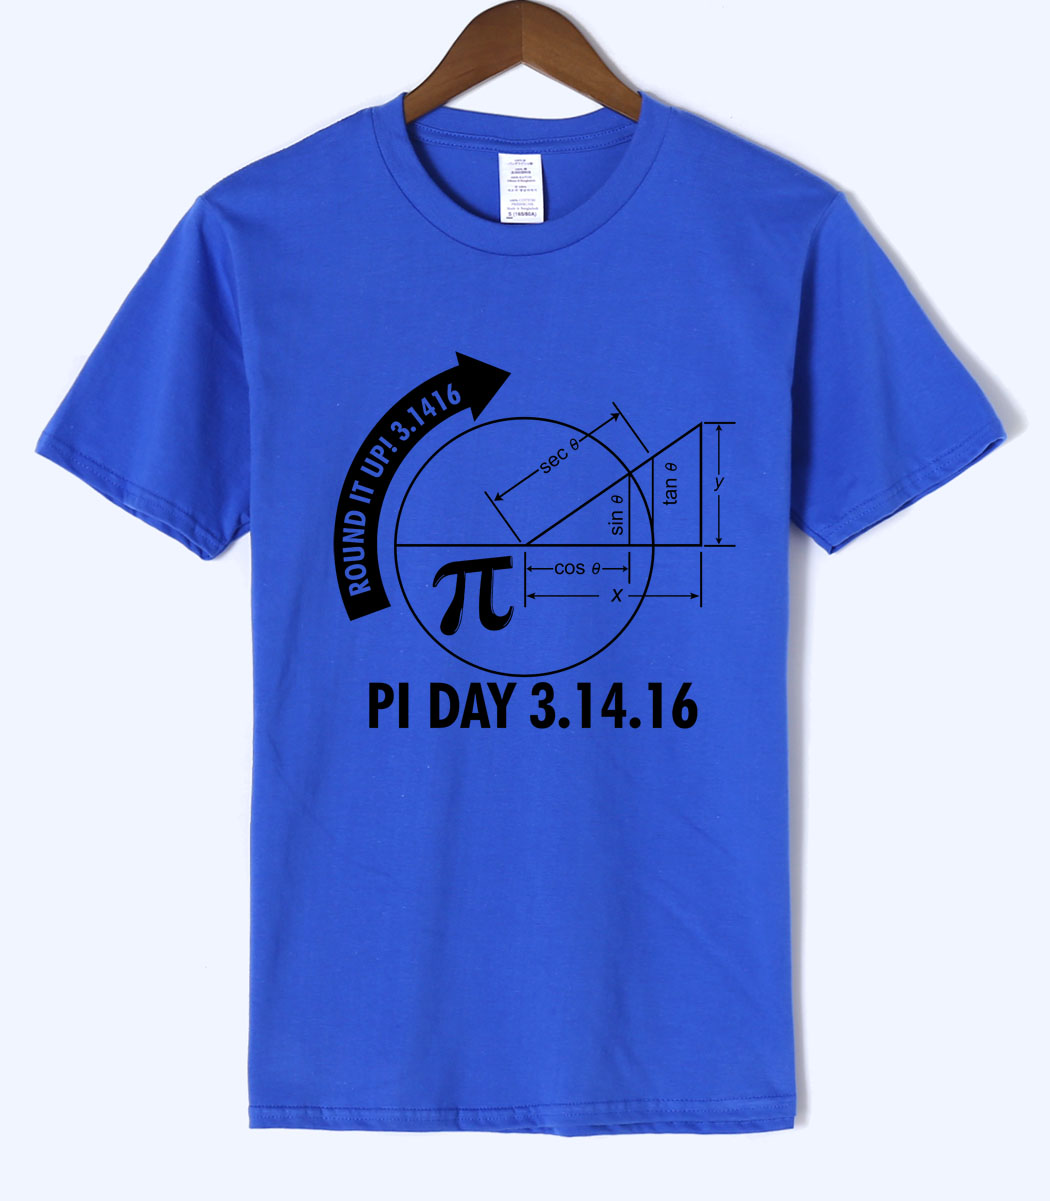 science men t shirt Math Graph And Pi 2018 summer new loose fit t-shirt Short Sleeve O-Neck 100% cotton high quality tops tee